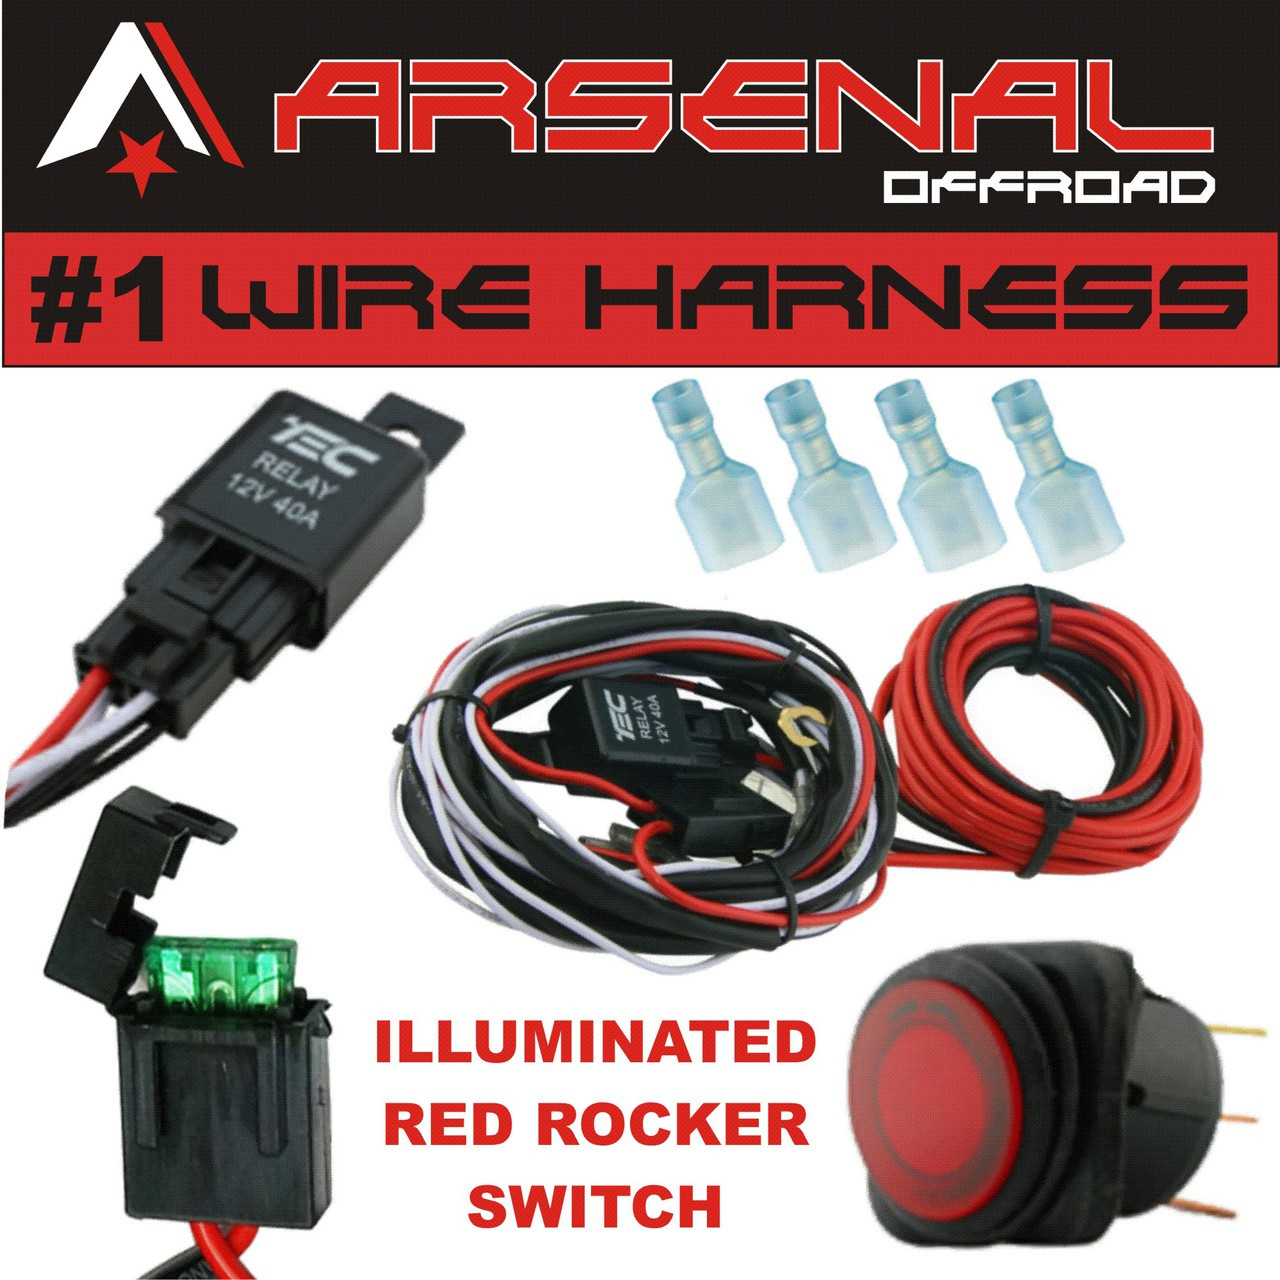 1 40 amp universal wiring harness comes with 40 relay illuminated on off rocker switch for offroad led light bars and work lights jeep atv utv truck  [ 1280 x 1280 Pixel ]